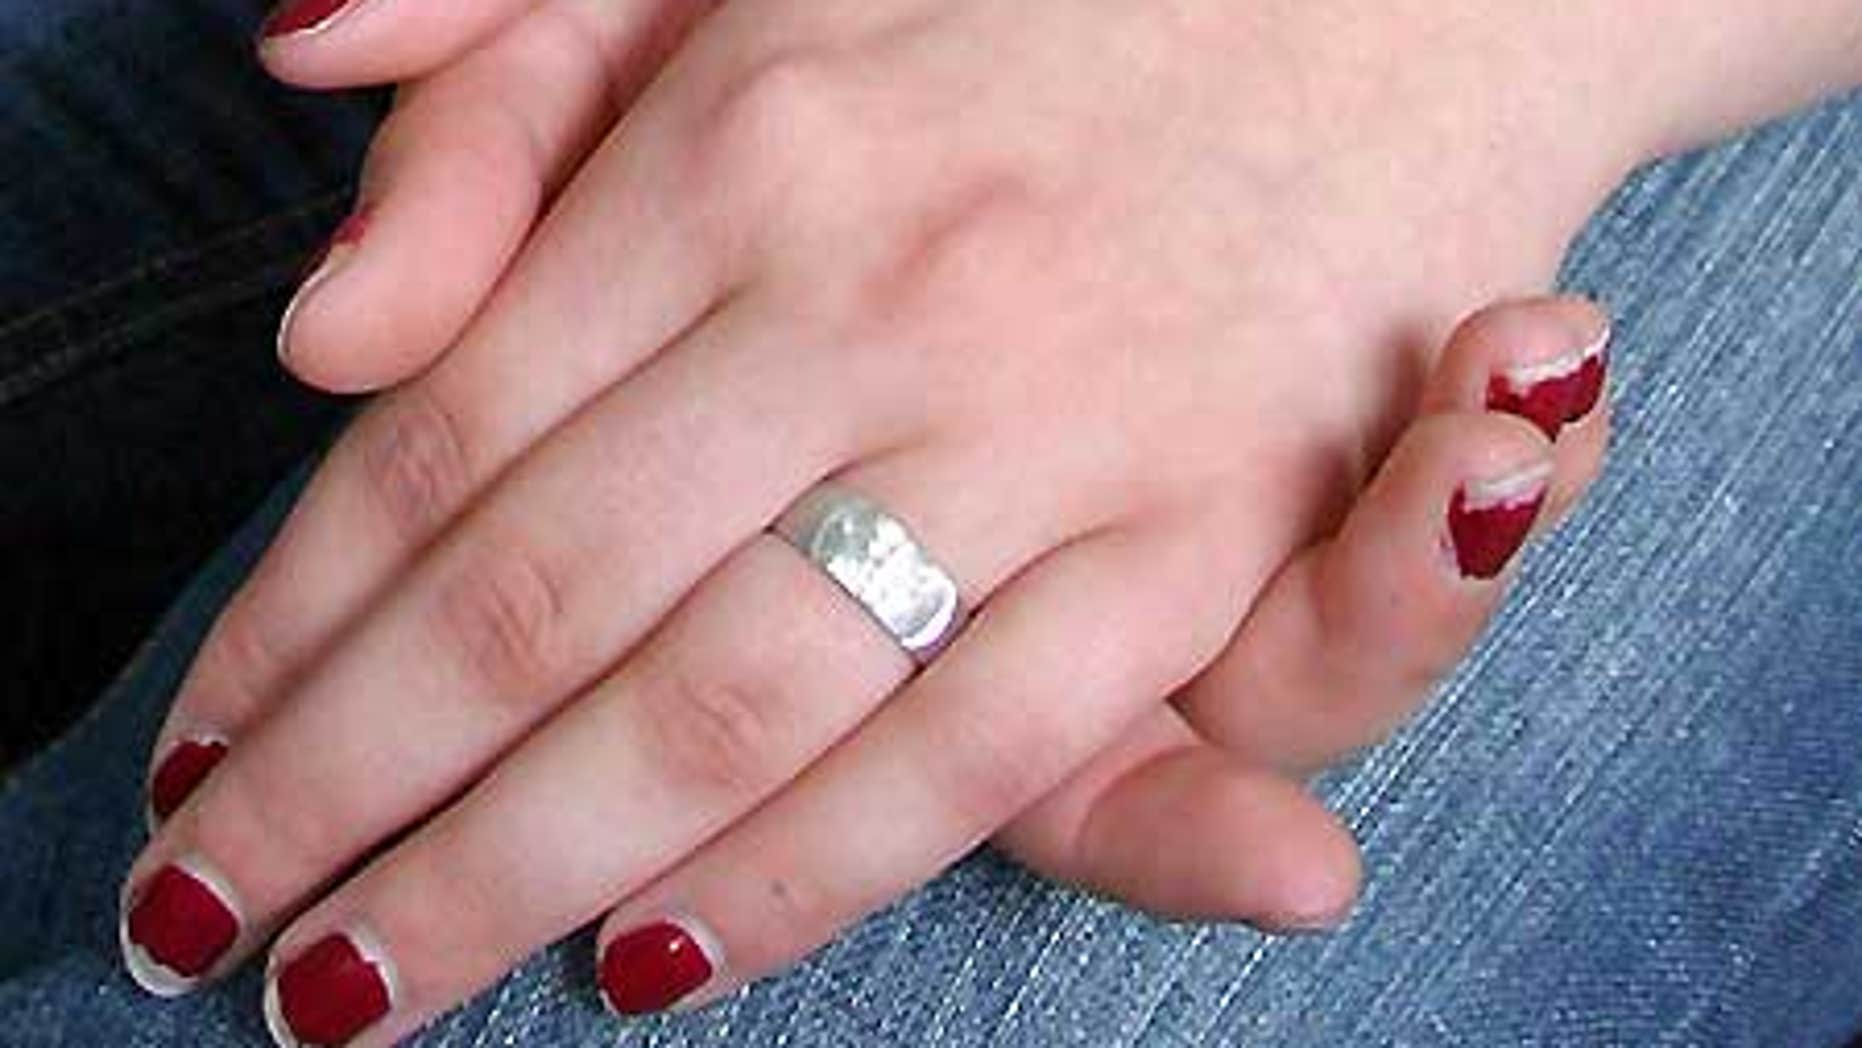 A teenaged girl wears a purity ring representing her pledge to remain celibate until marriage.